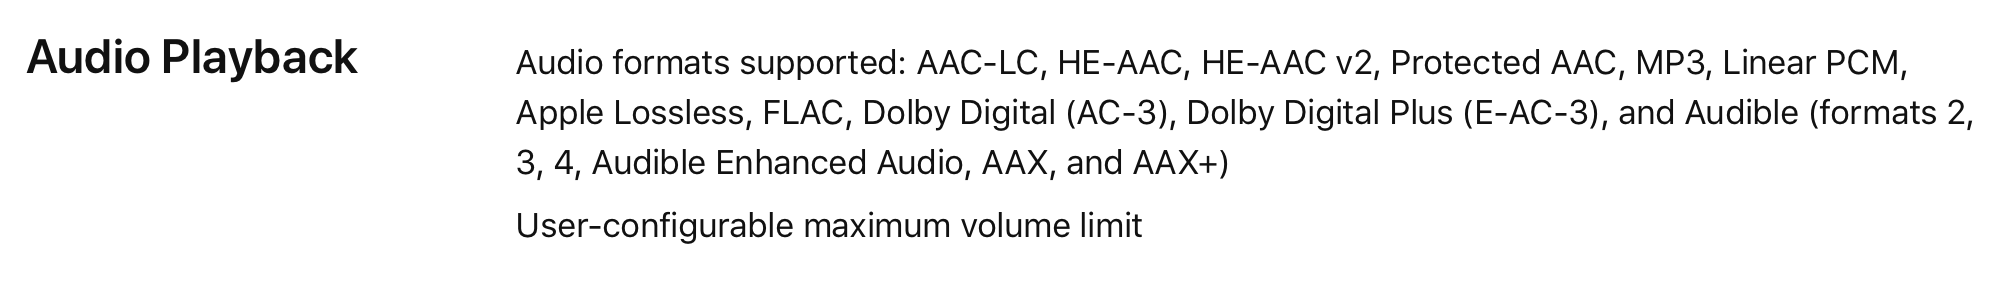 iPhone 8, iPhone X & Apple TV 4K Listed with Support for FLAC